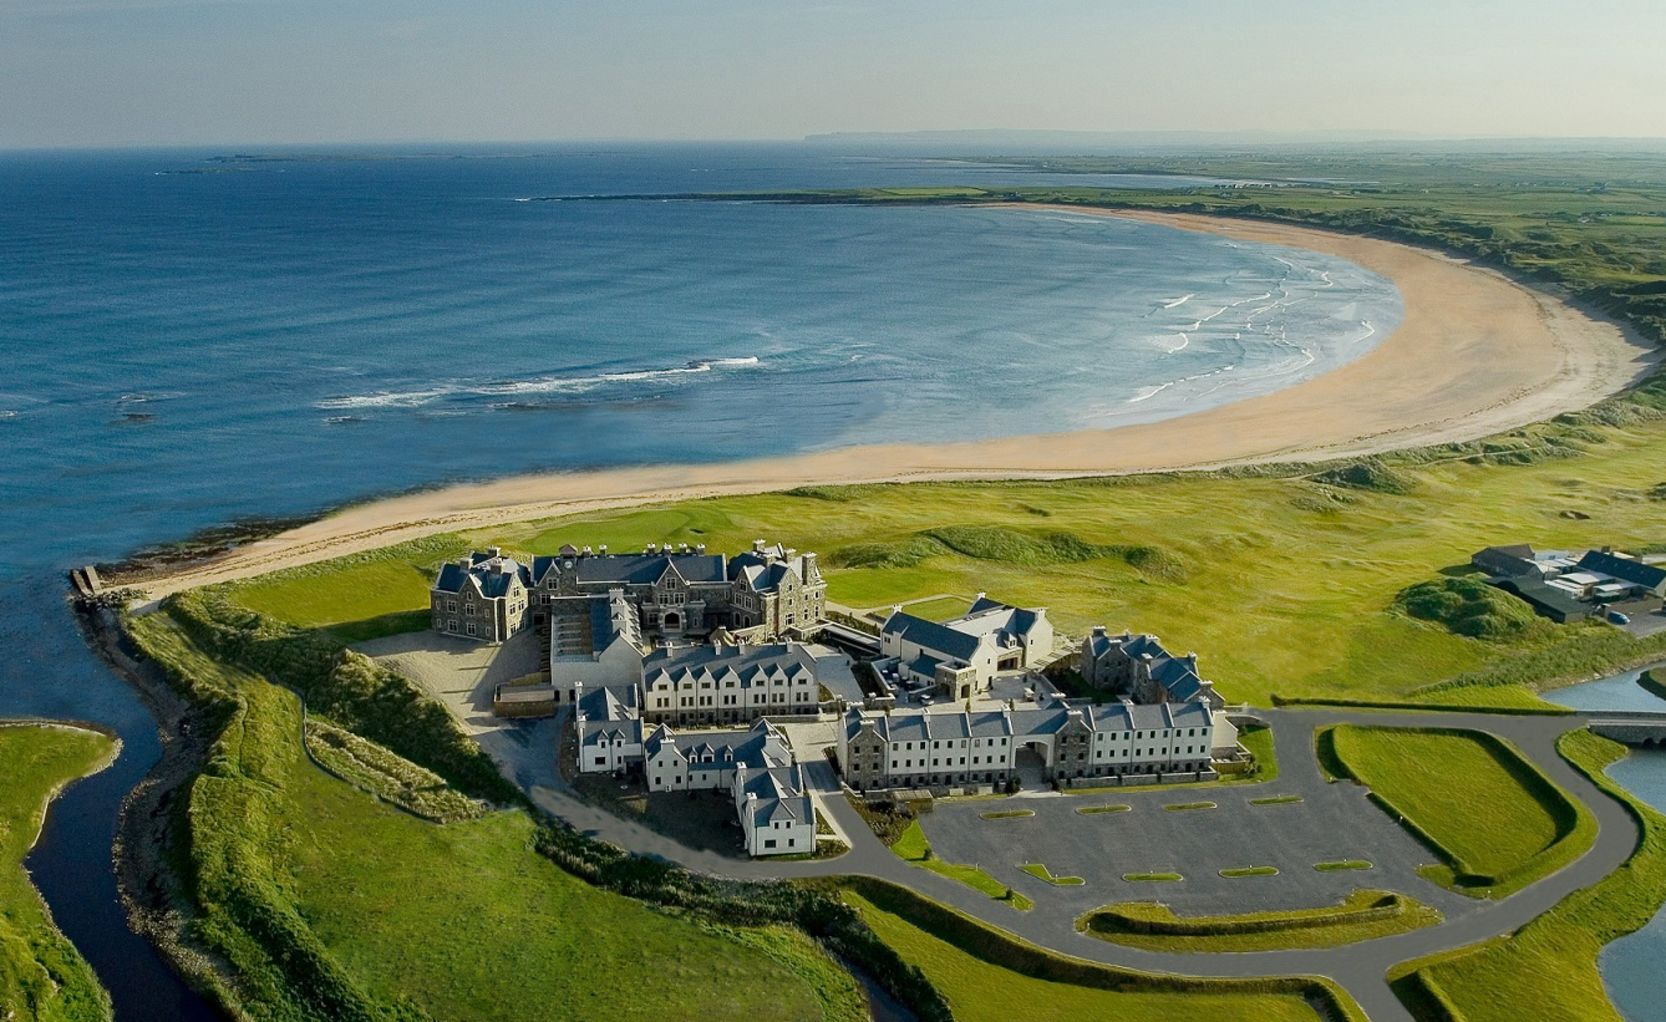 Drone View of Doonbeg Exterior and Ocean